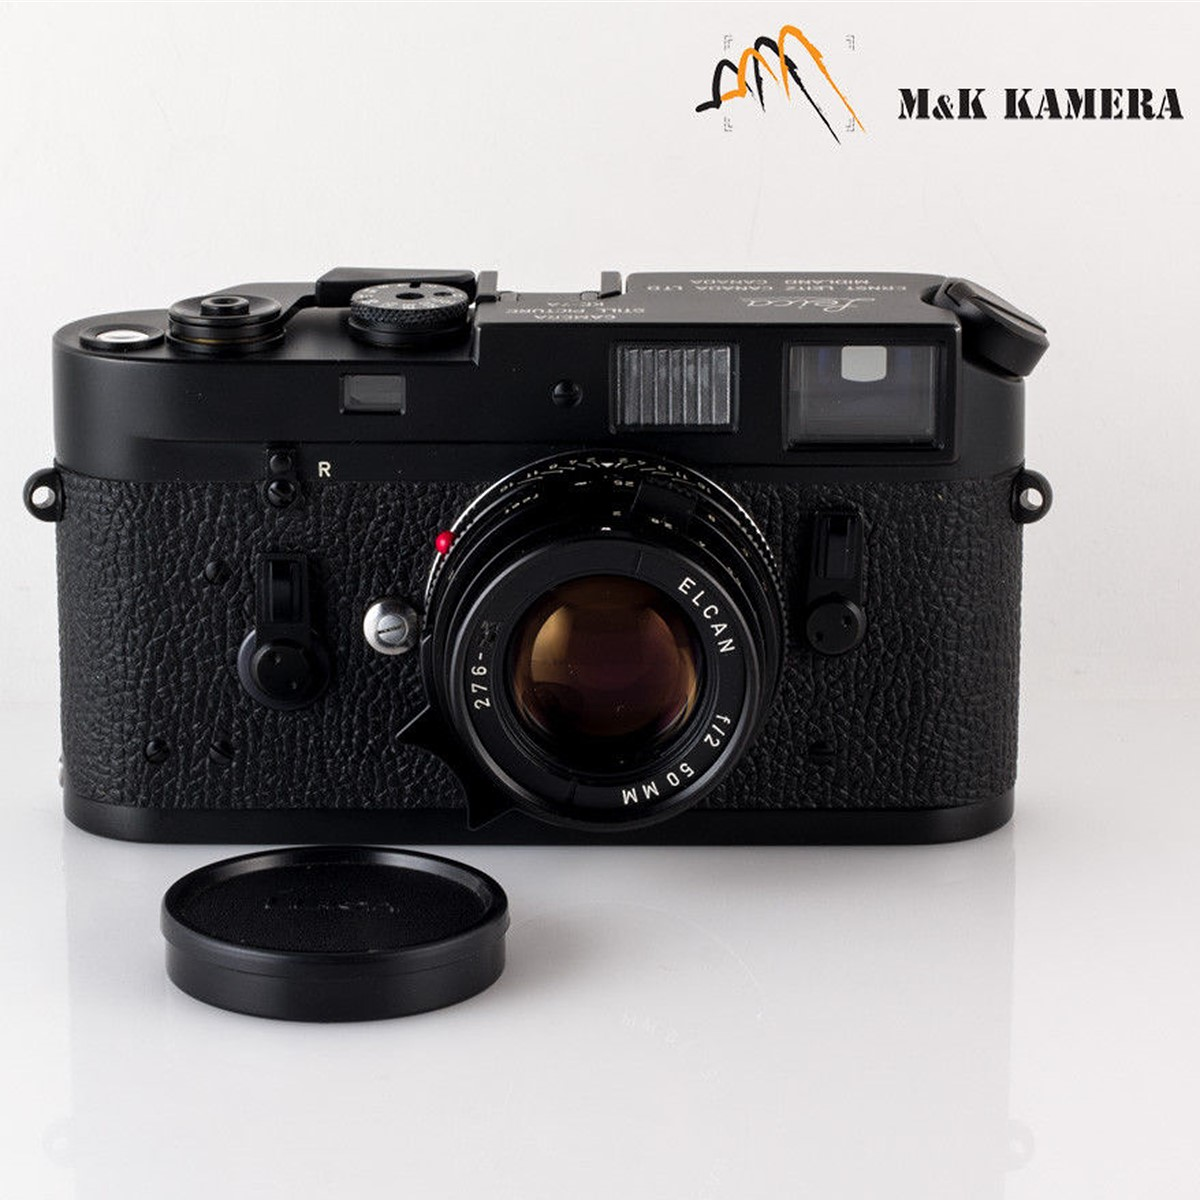 Rare Leica Ke 7a Military Rangefinder Camera For Sale On Ebay Digital Photography Review